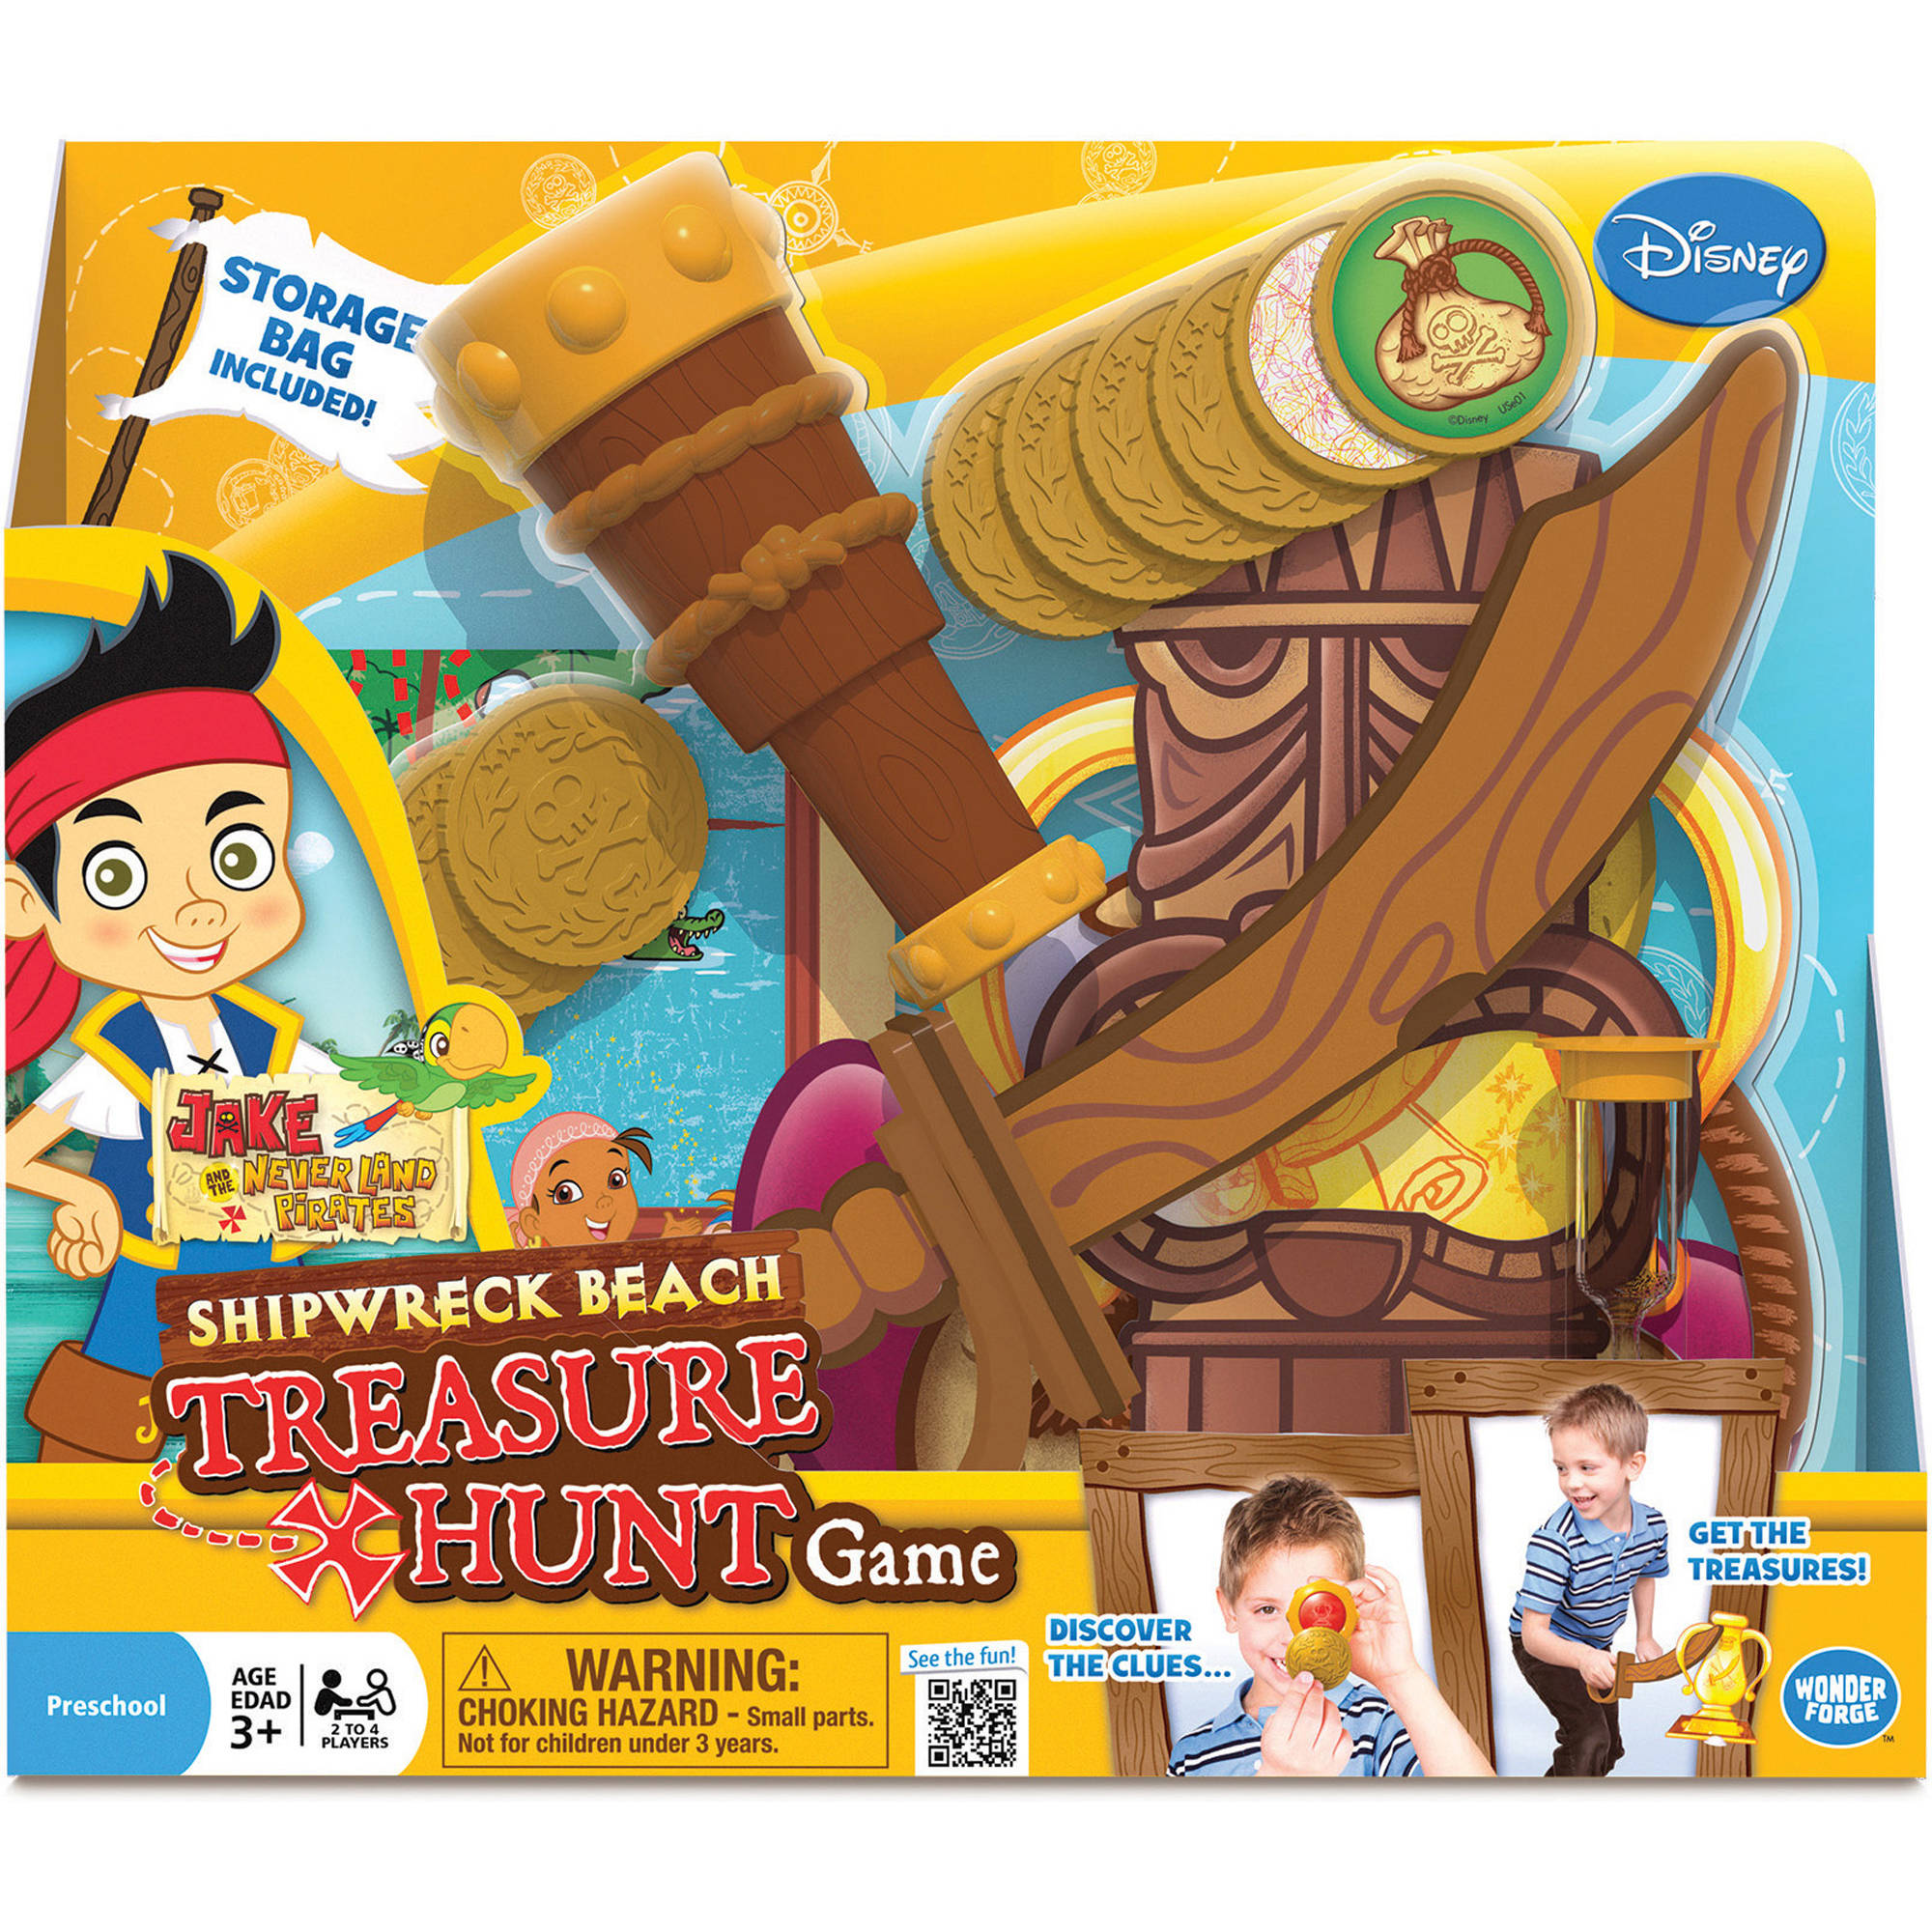 Disney Jake And The Never Land Pirates Shipwreck Beach Treasure Hunt Role Play Game